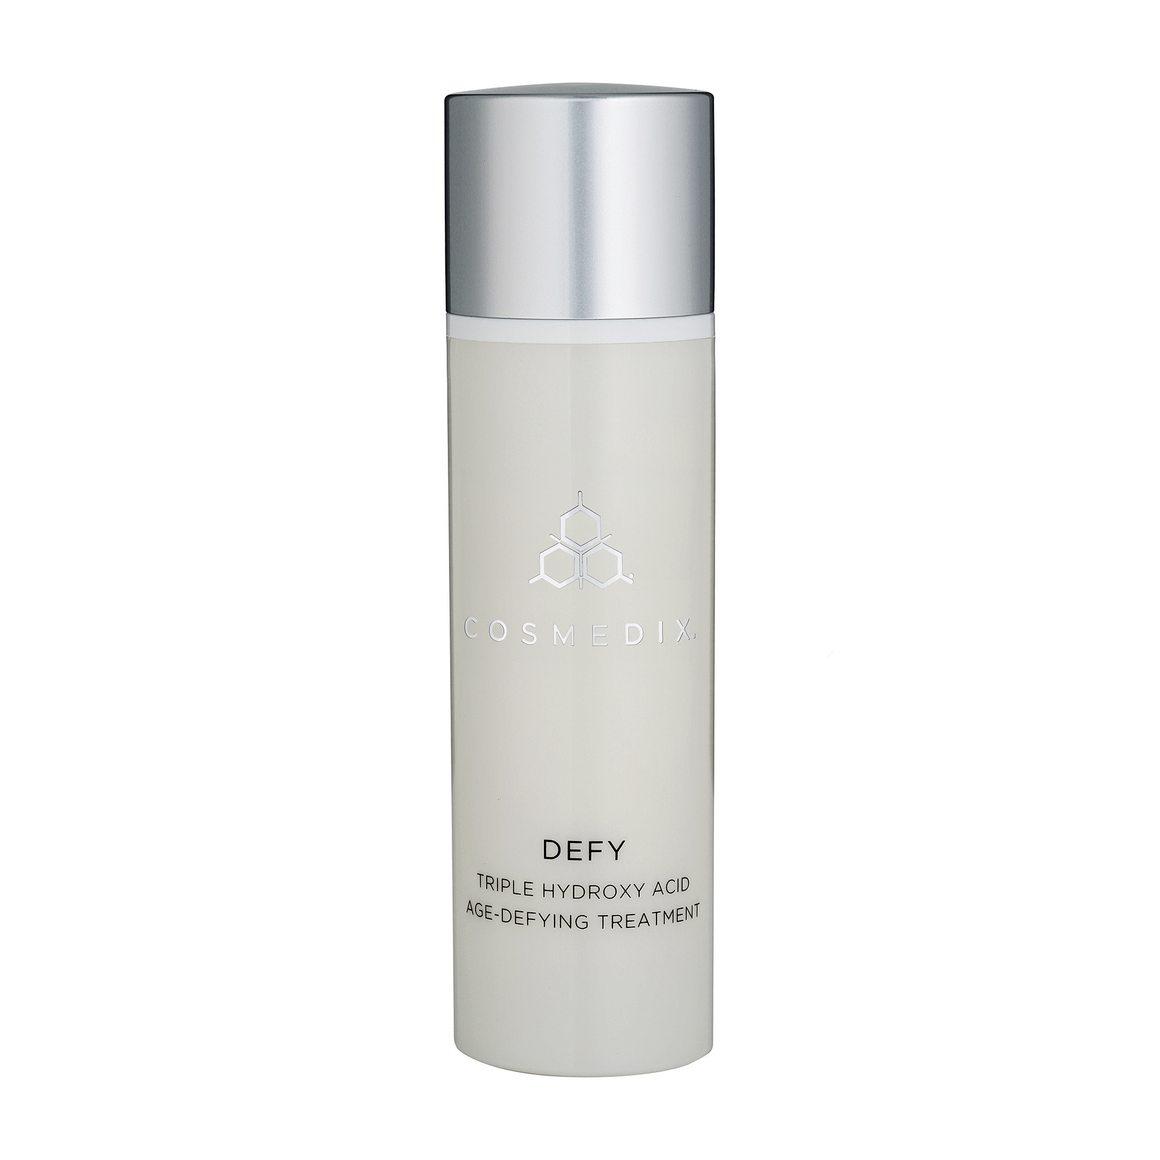 Cosmedix Defy Antiaging and Resurfacing Serum